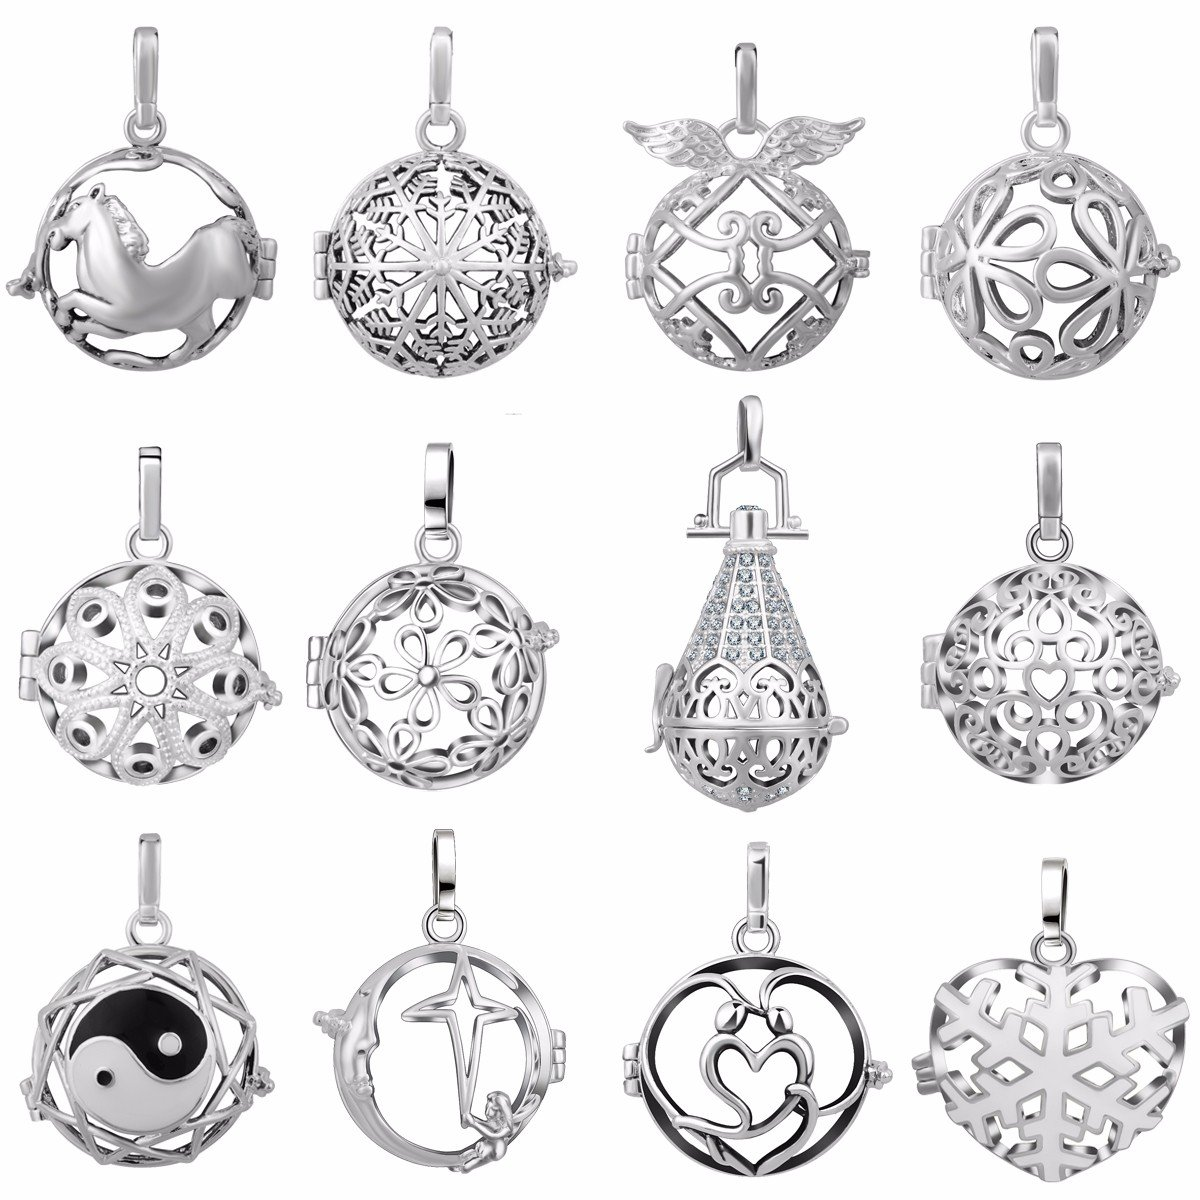 EUDORA 12pcs New Special offer Angel Chime Caller Silver Plated Lockets Pendant for 20mm Chime Ball